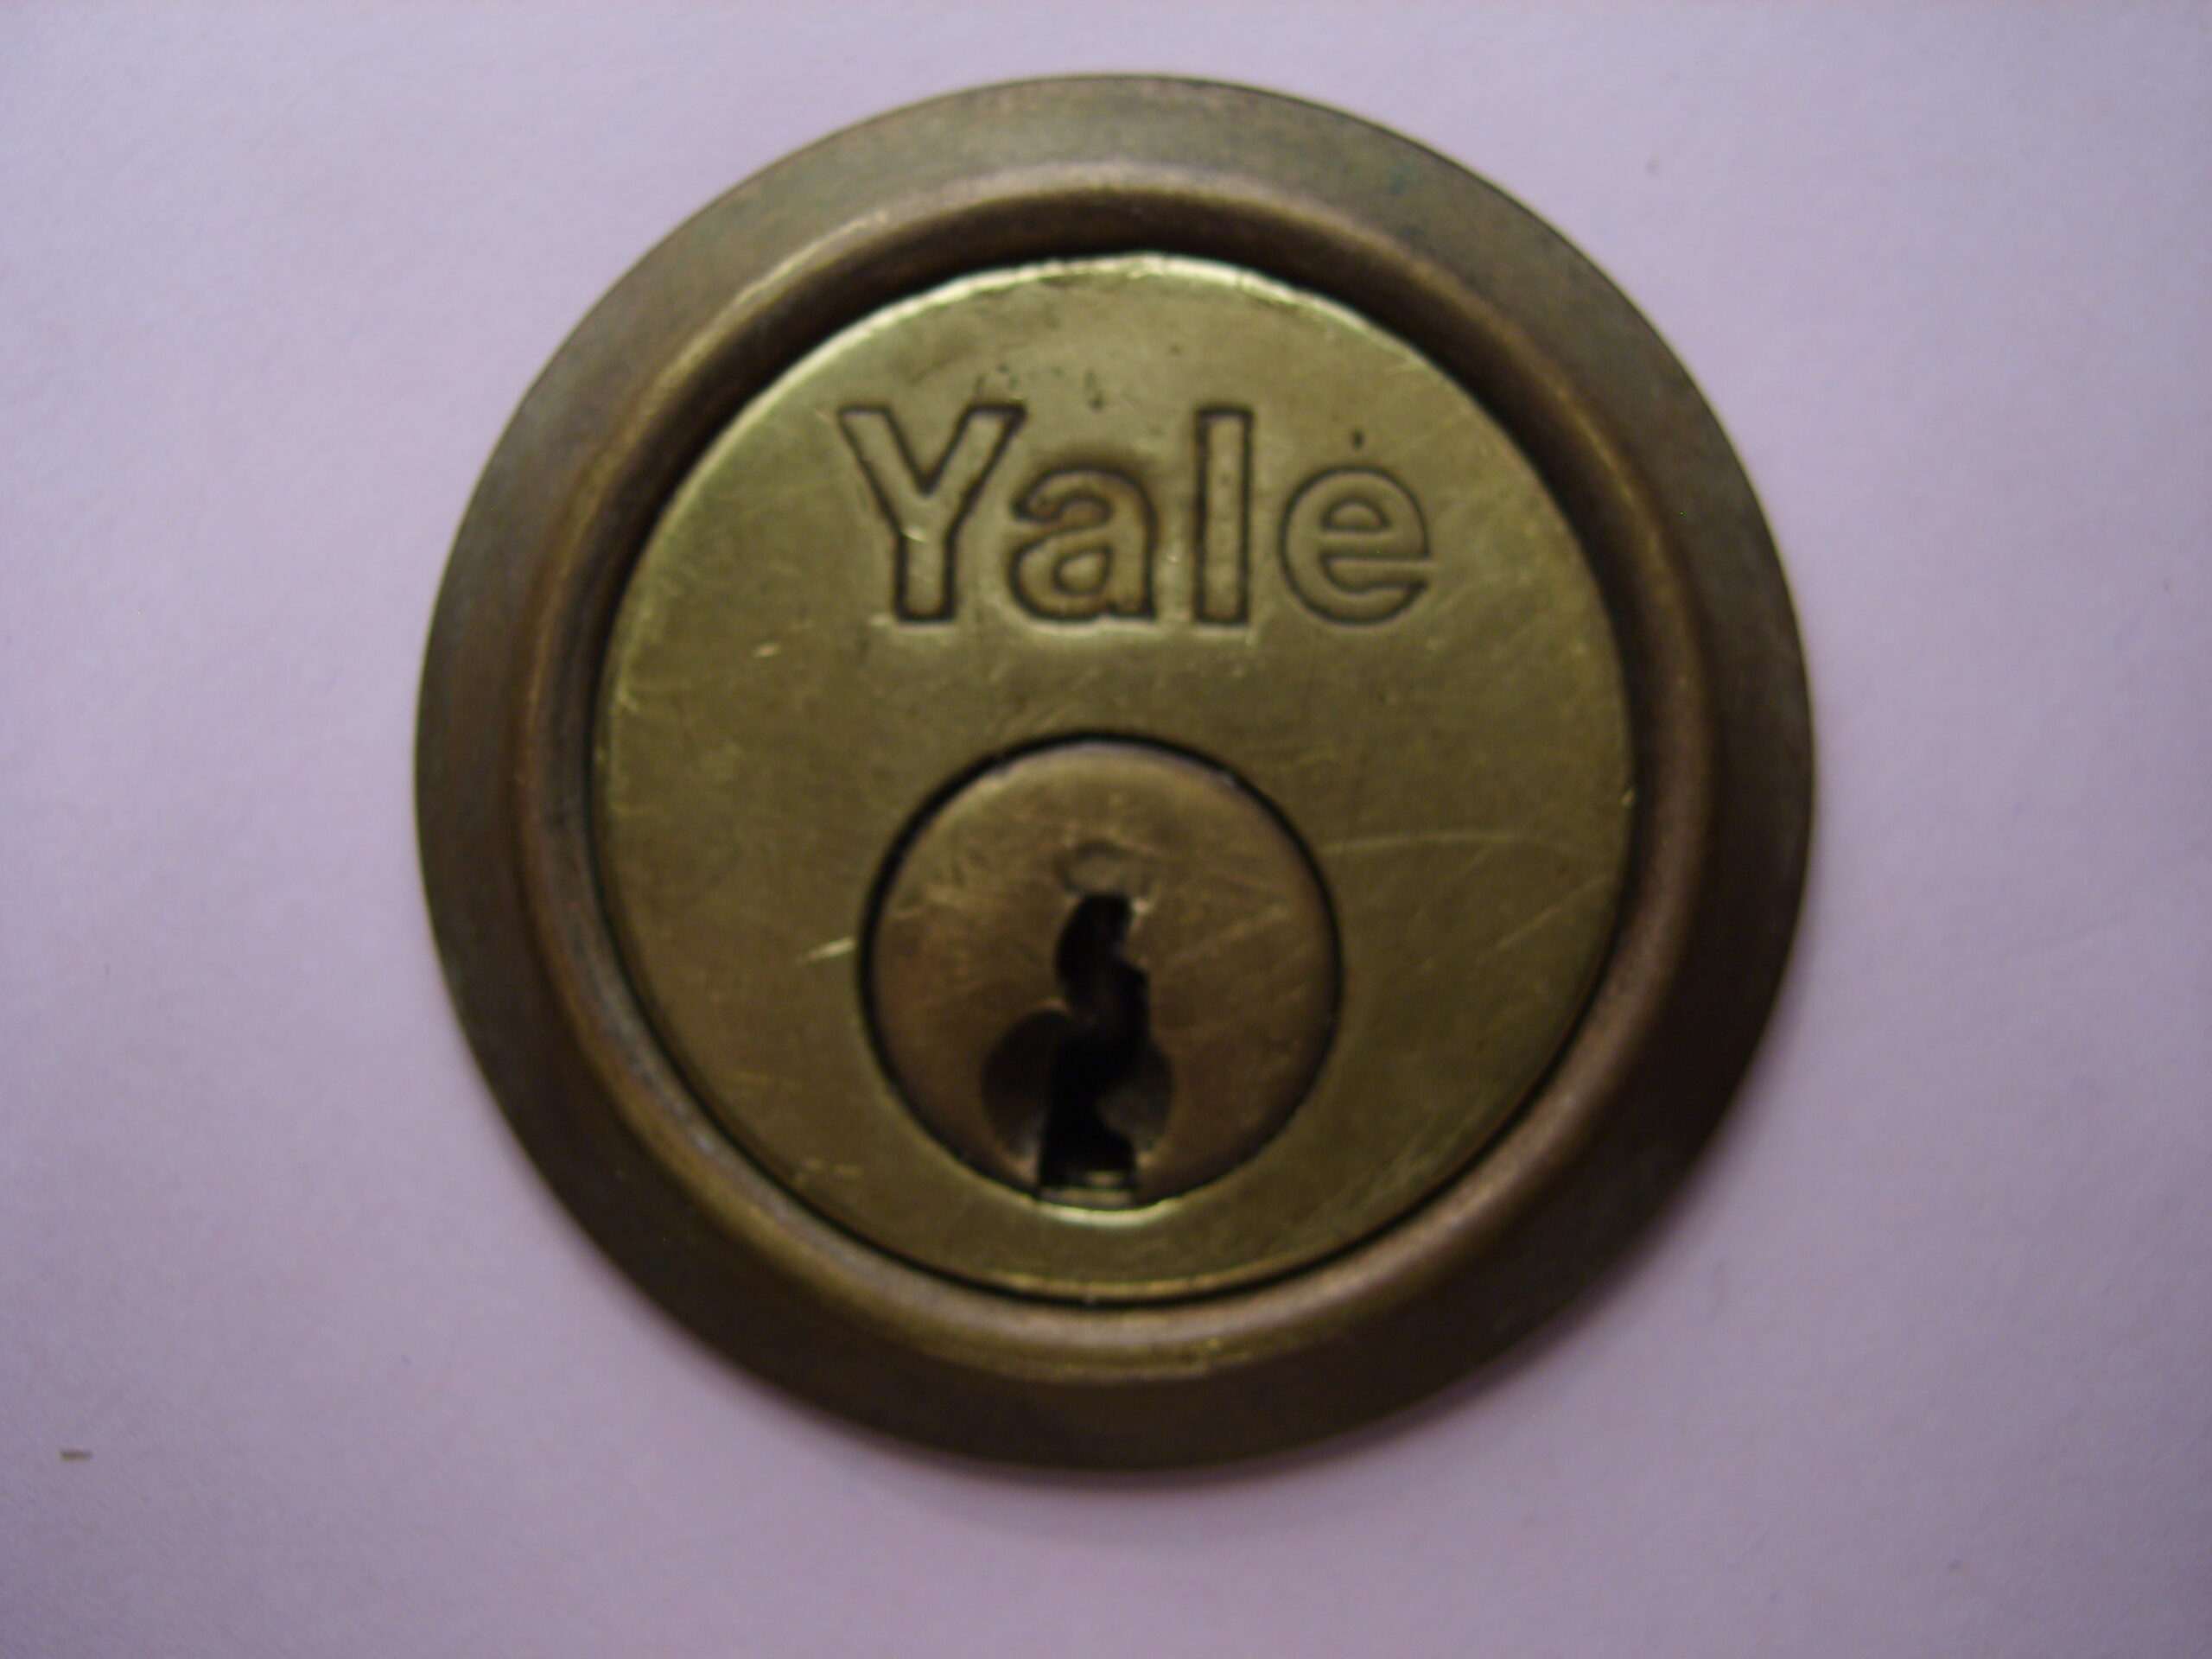 Contact your local locksmith for Yale cylinders